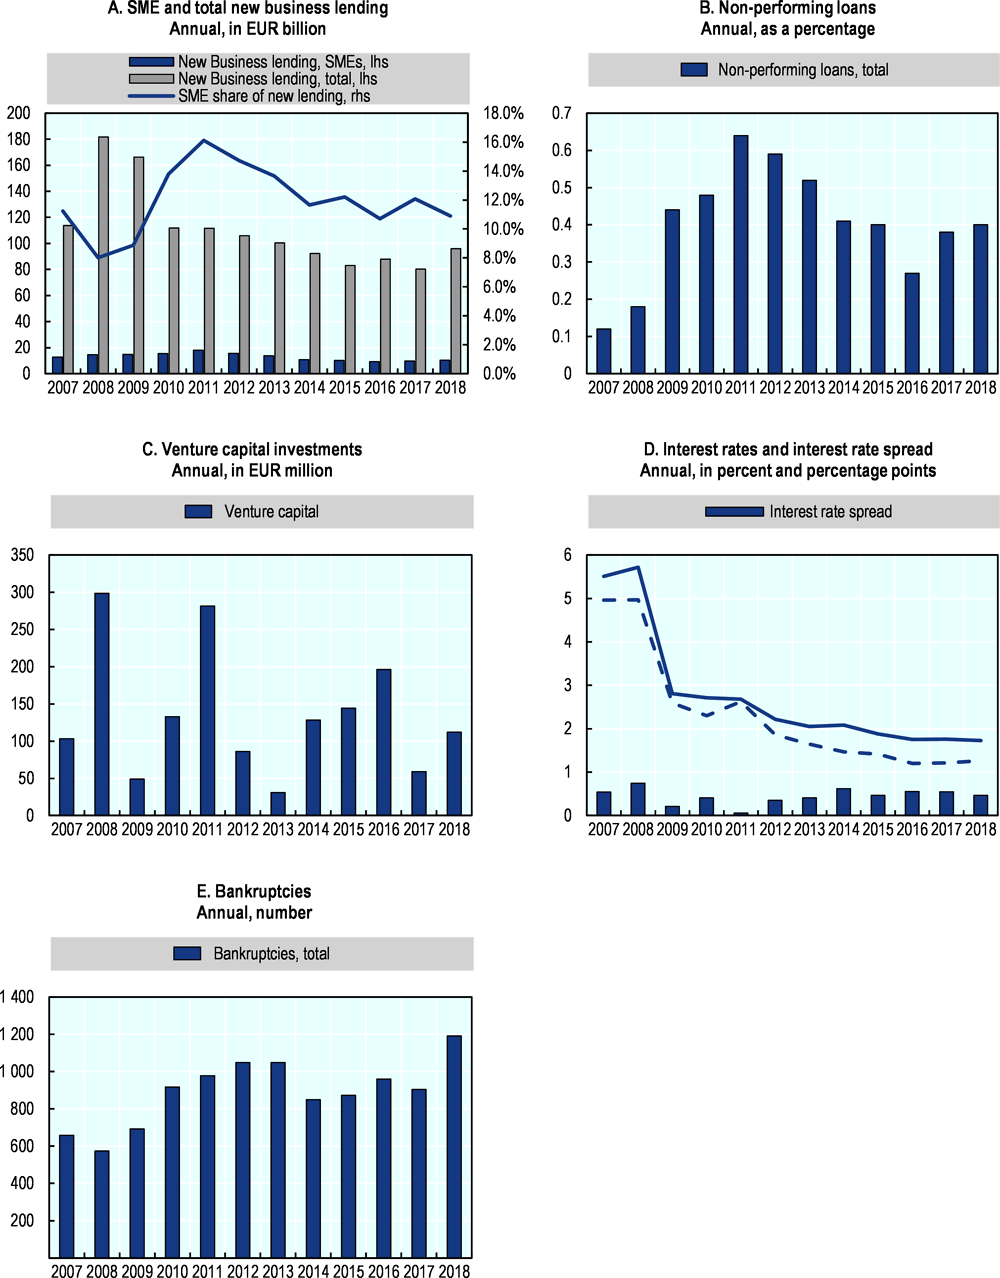 Figure 29.2. Trends in SME and entrepreneurship finance in Luxembourg